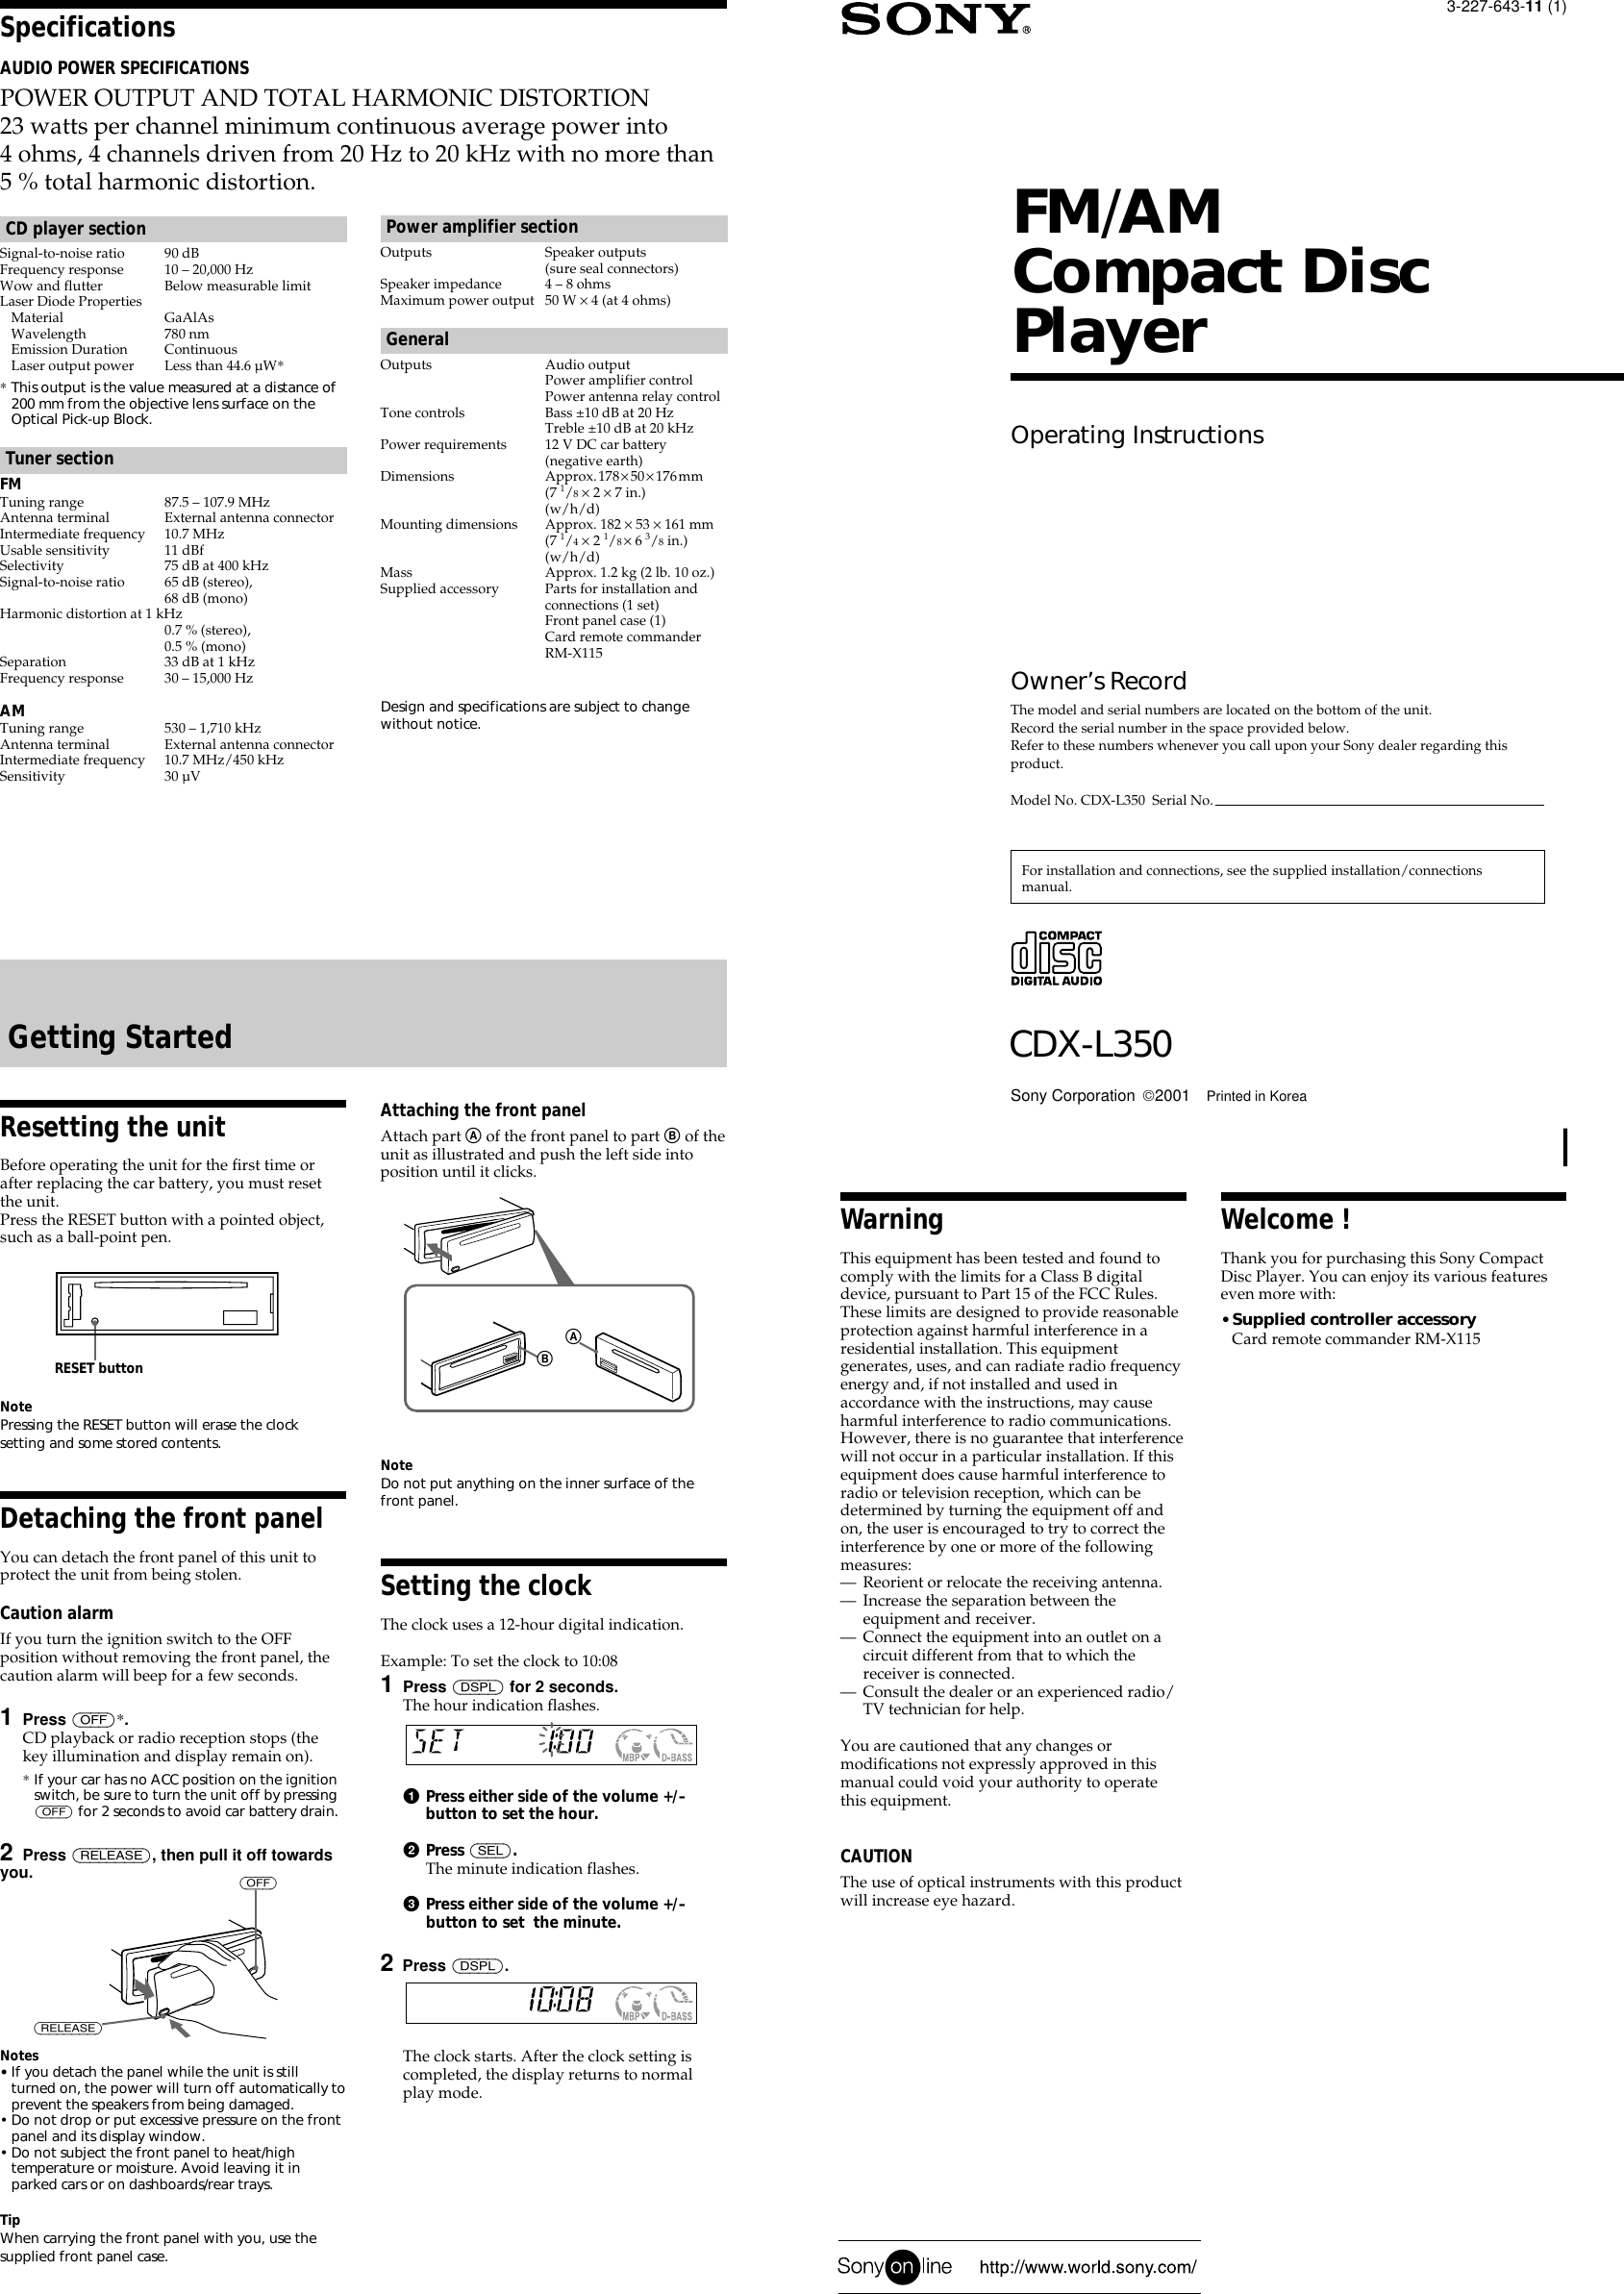 sony cdx l350 users manual sony cdx-l350 installation manual Sony Cdx L350 Wiring Diagram #8